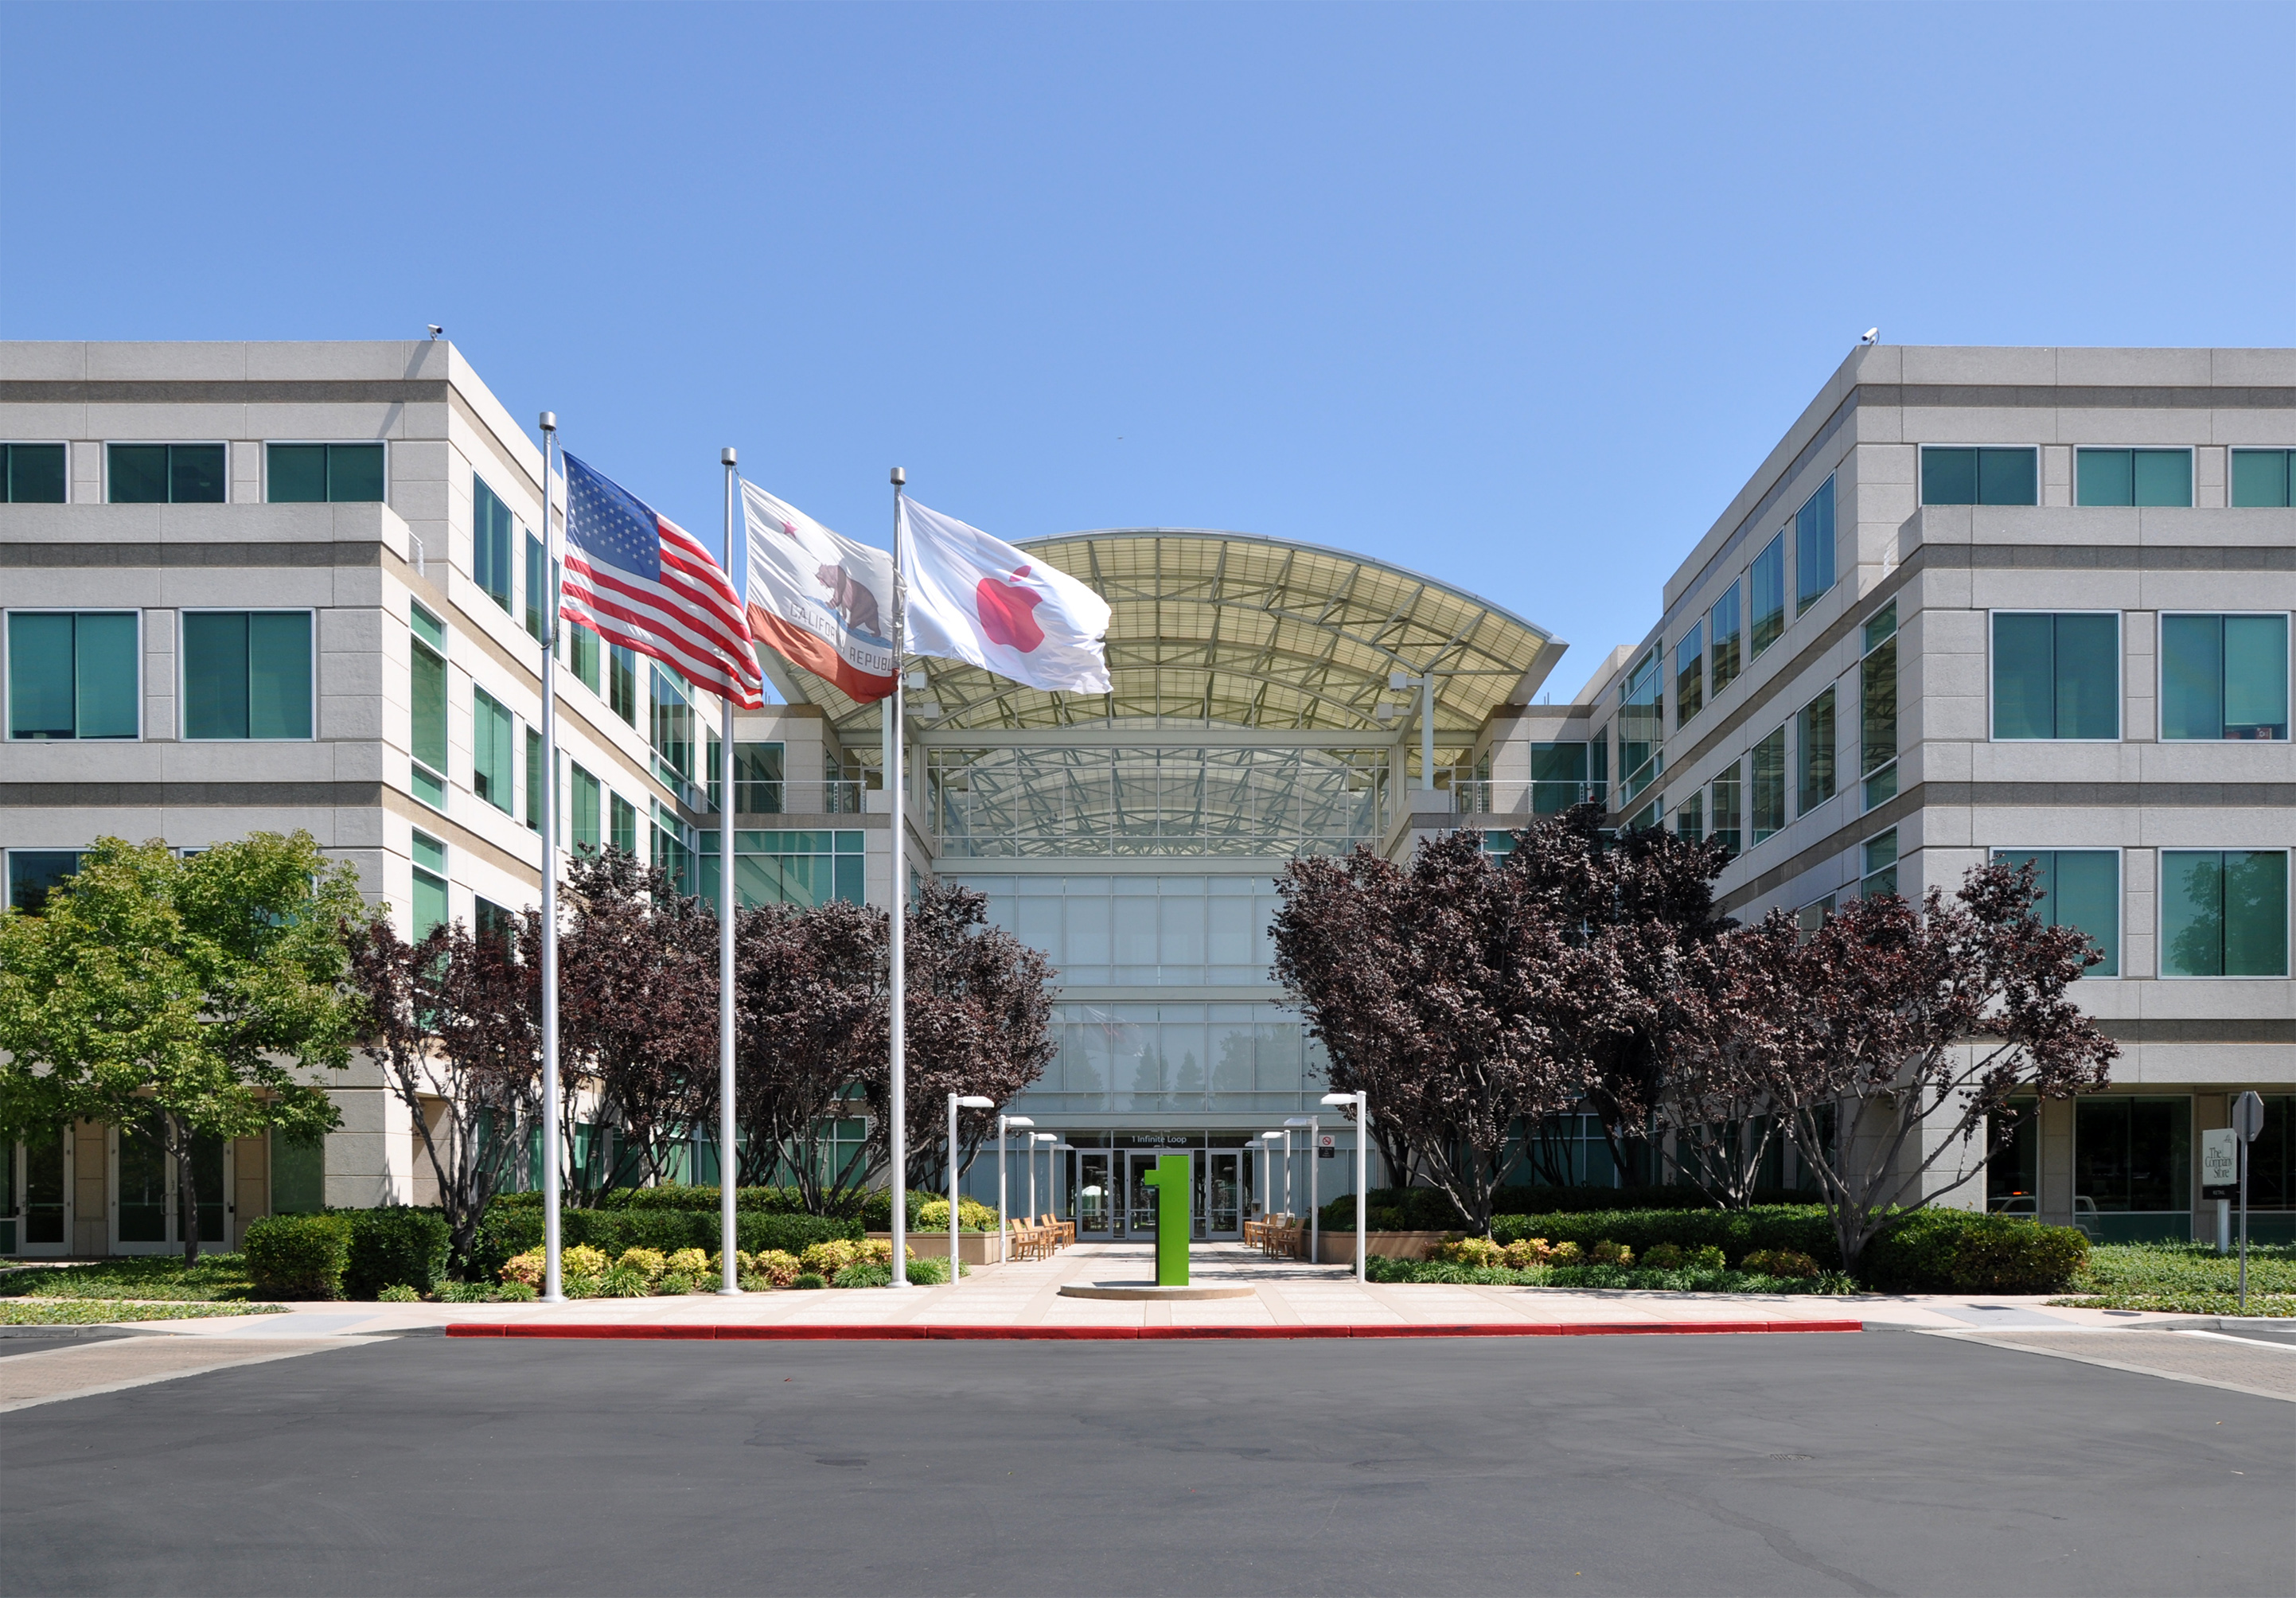 Apple Headquarters - Joe Ravi [CC BY-SA 3.0 (http://creativecommons.org/licenses/by-sa/3.0)], via Wikimedia Commons